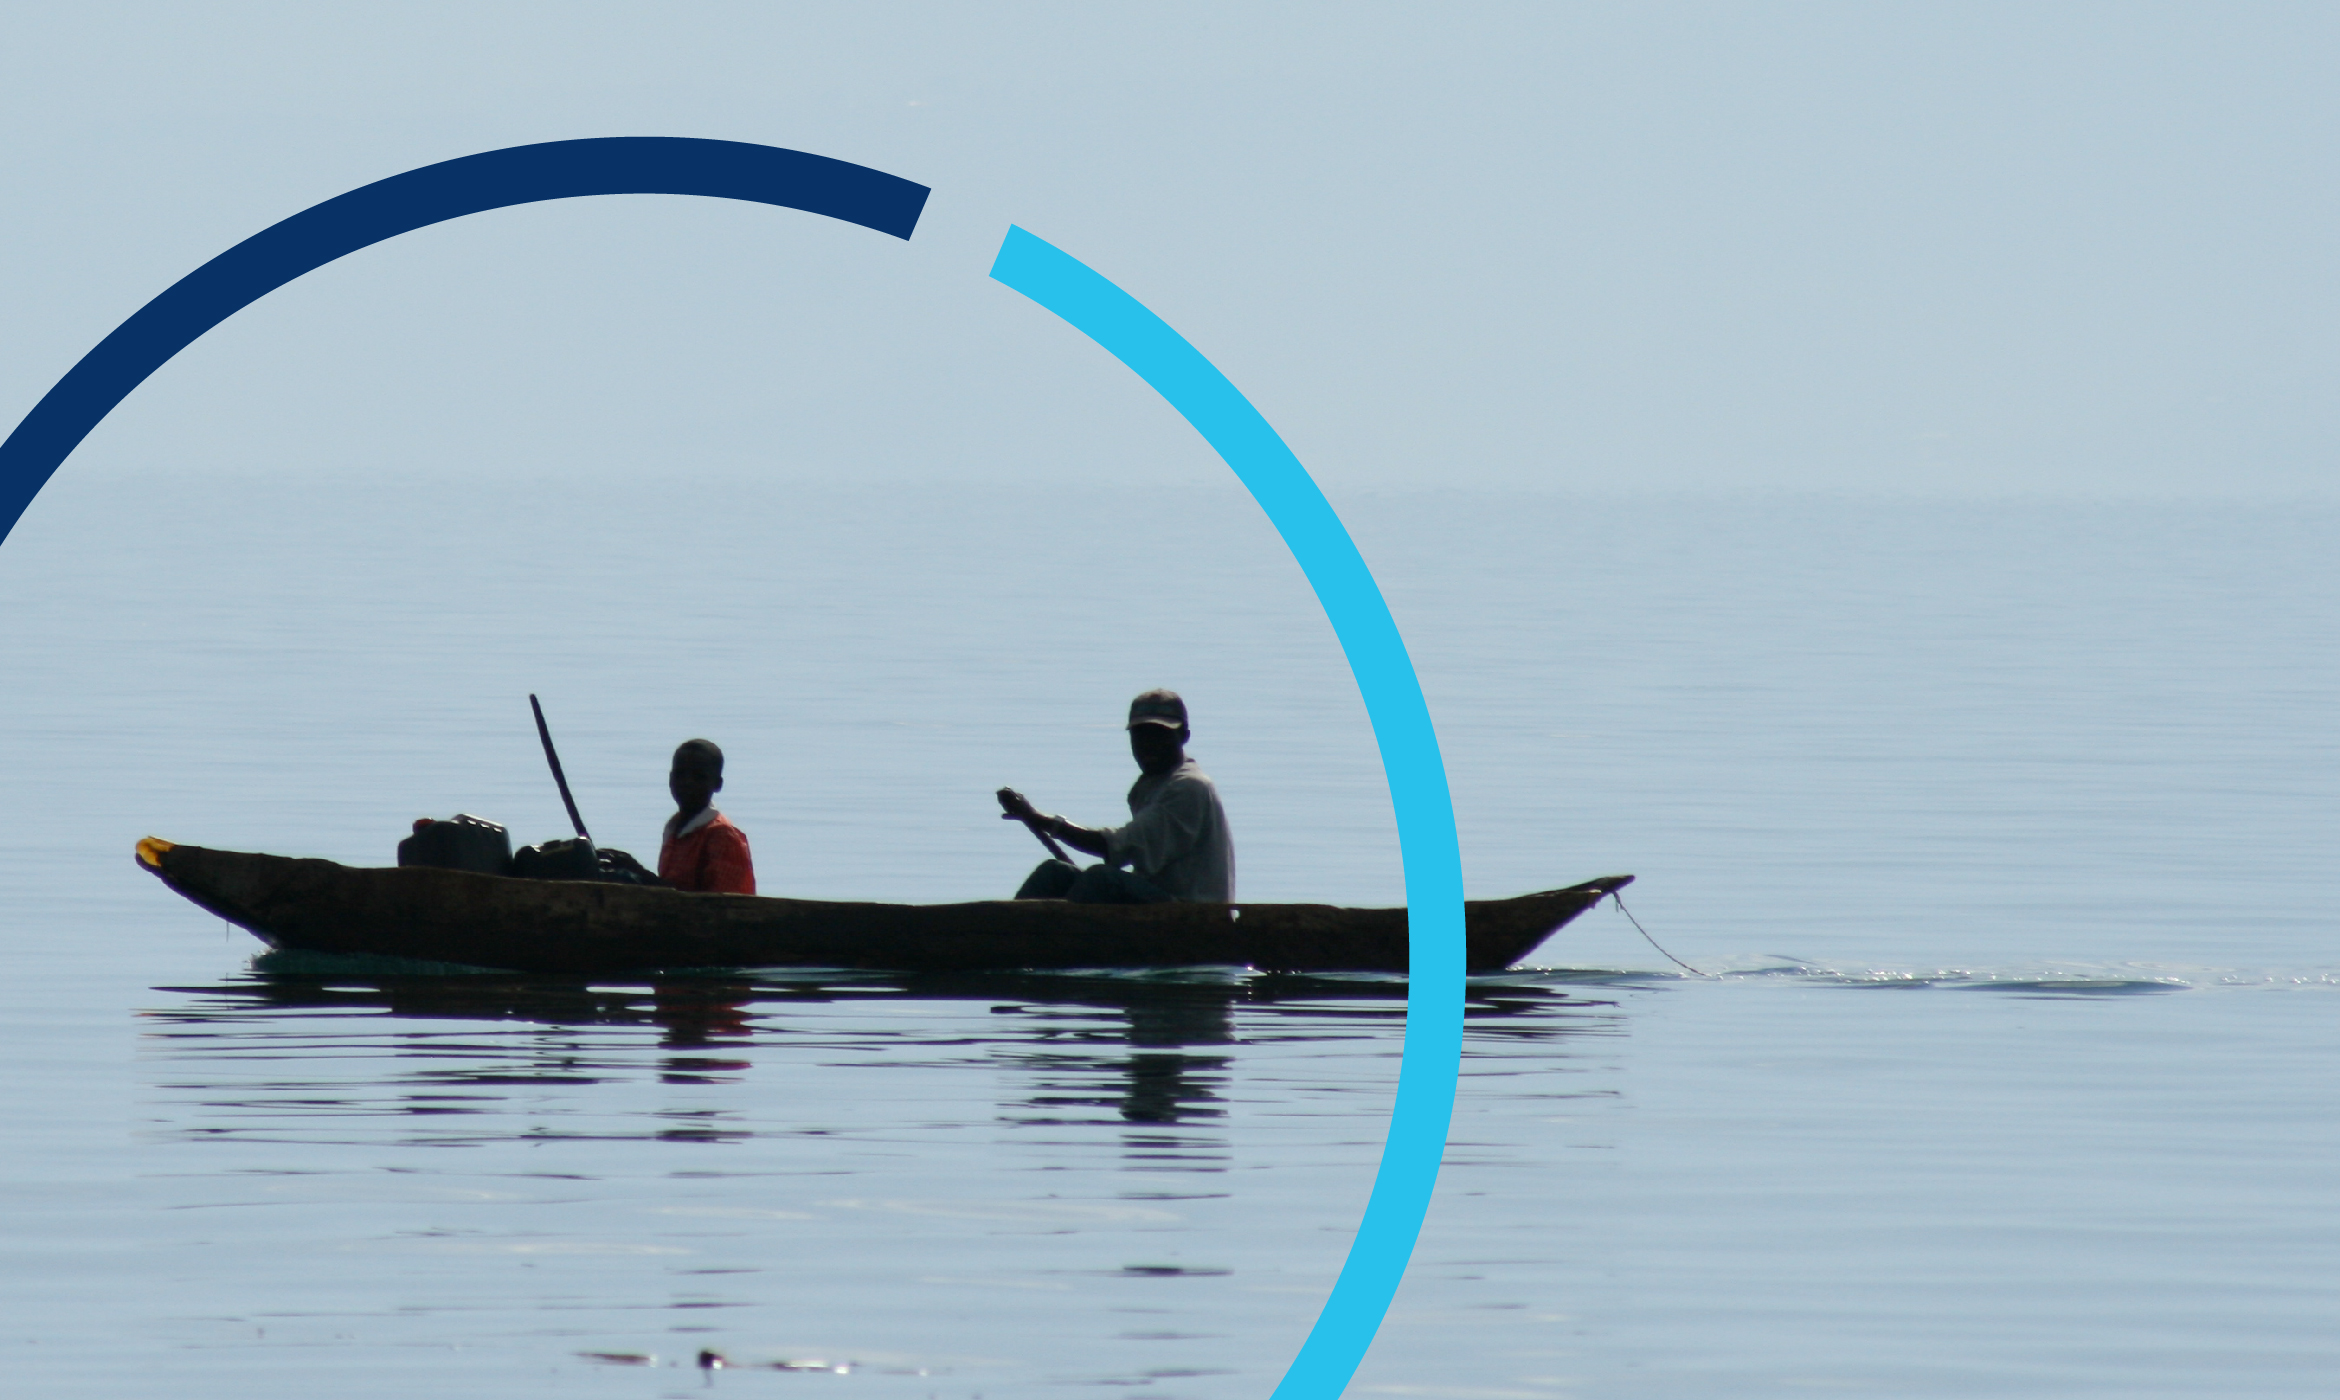 An example of IISD's image treatment. The logo mark is imposed over an image of two people canoeing.